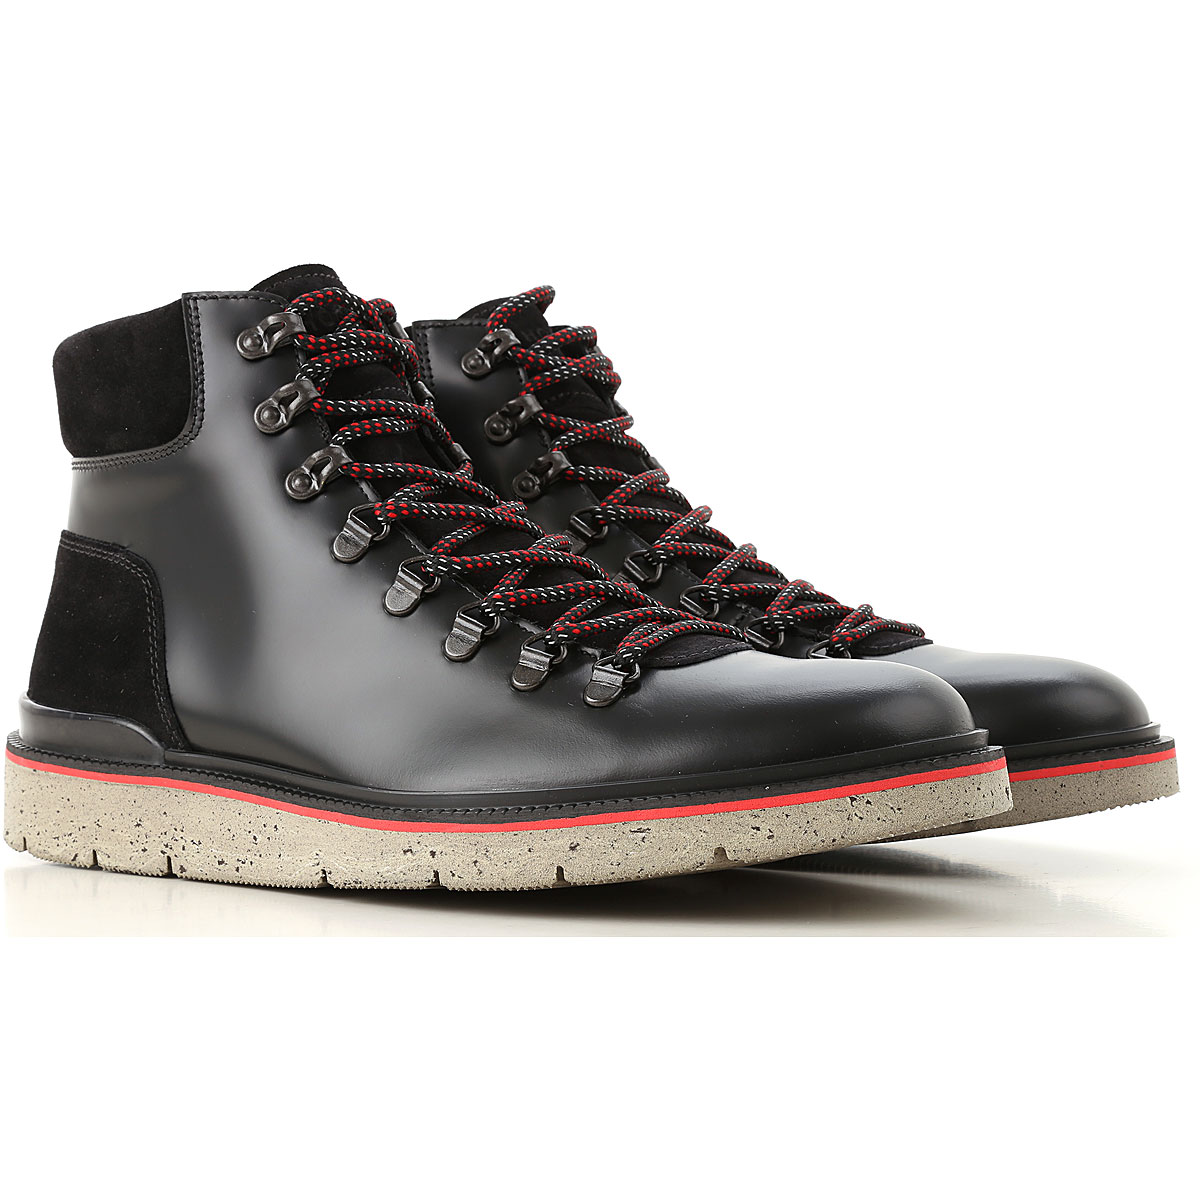 Image of Hogan Boots for Men, Booties, Black, Leather, 2017, 10 10.5 11 6 7 7.5 8 8.5 9 9.5